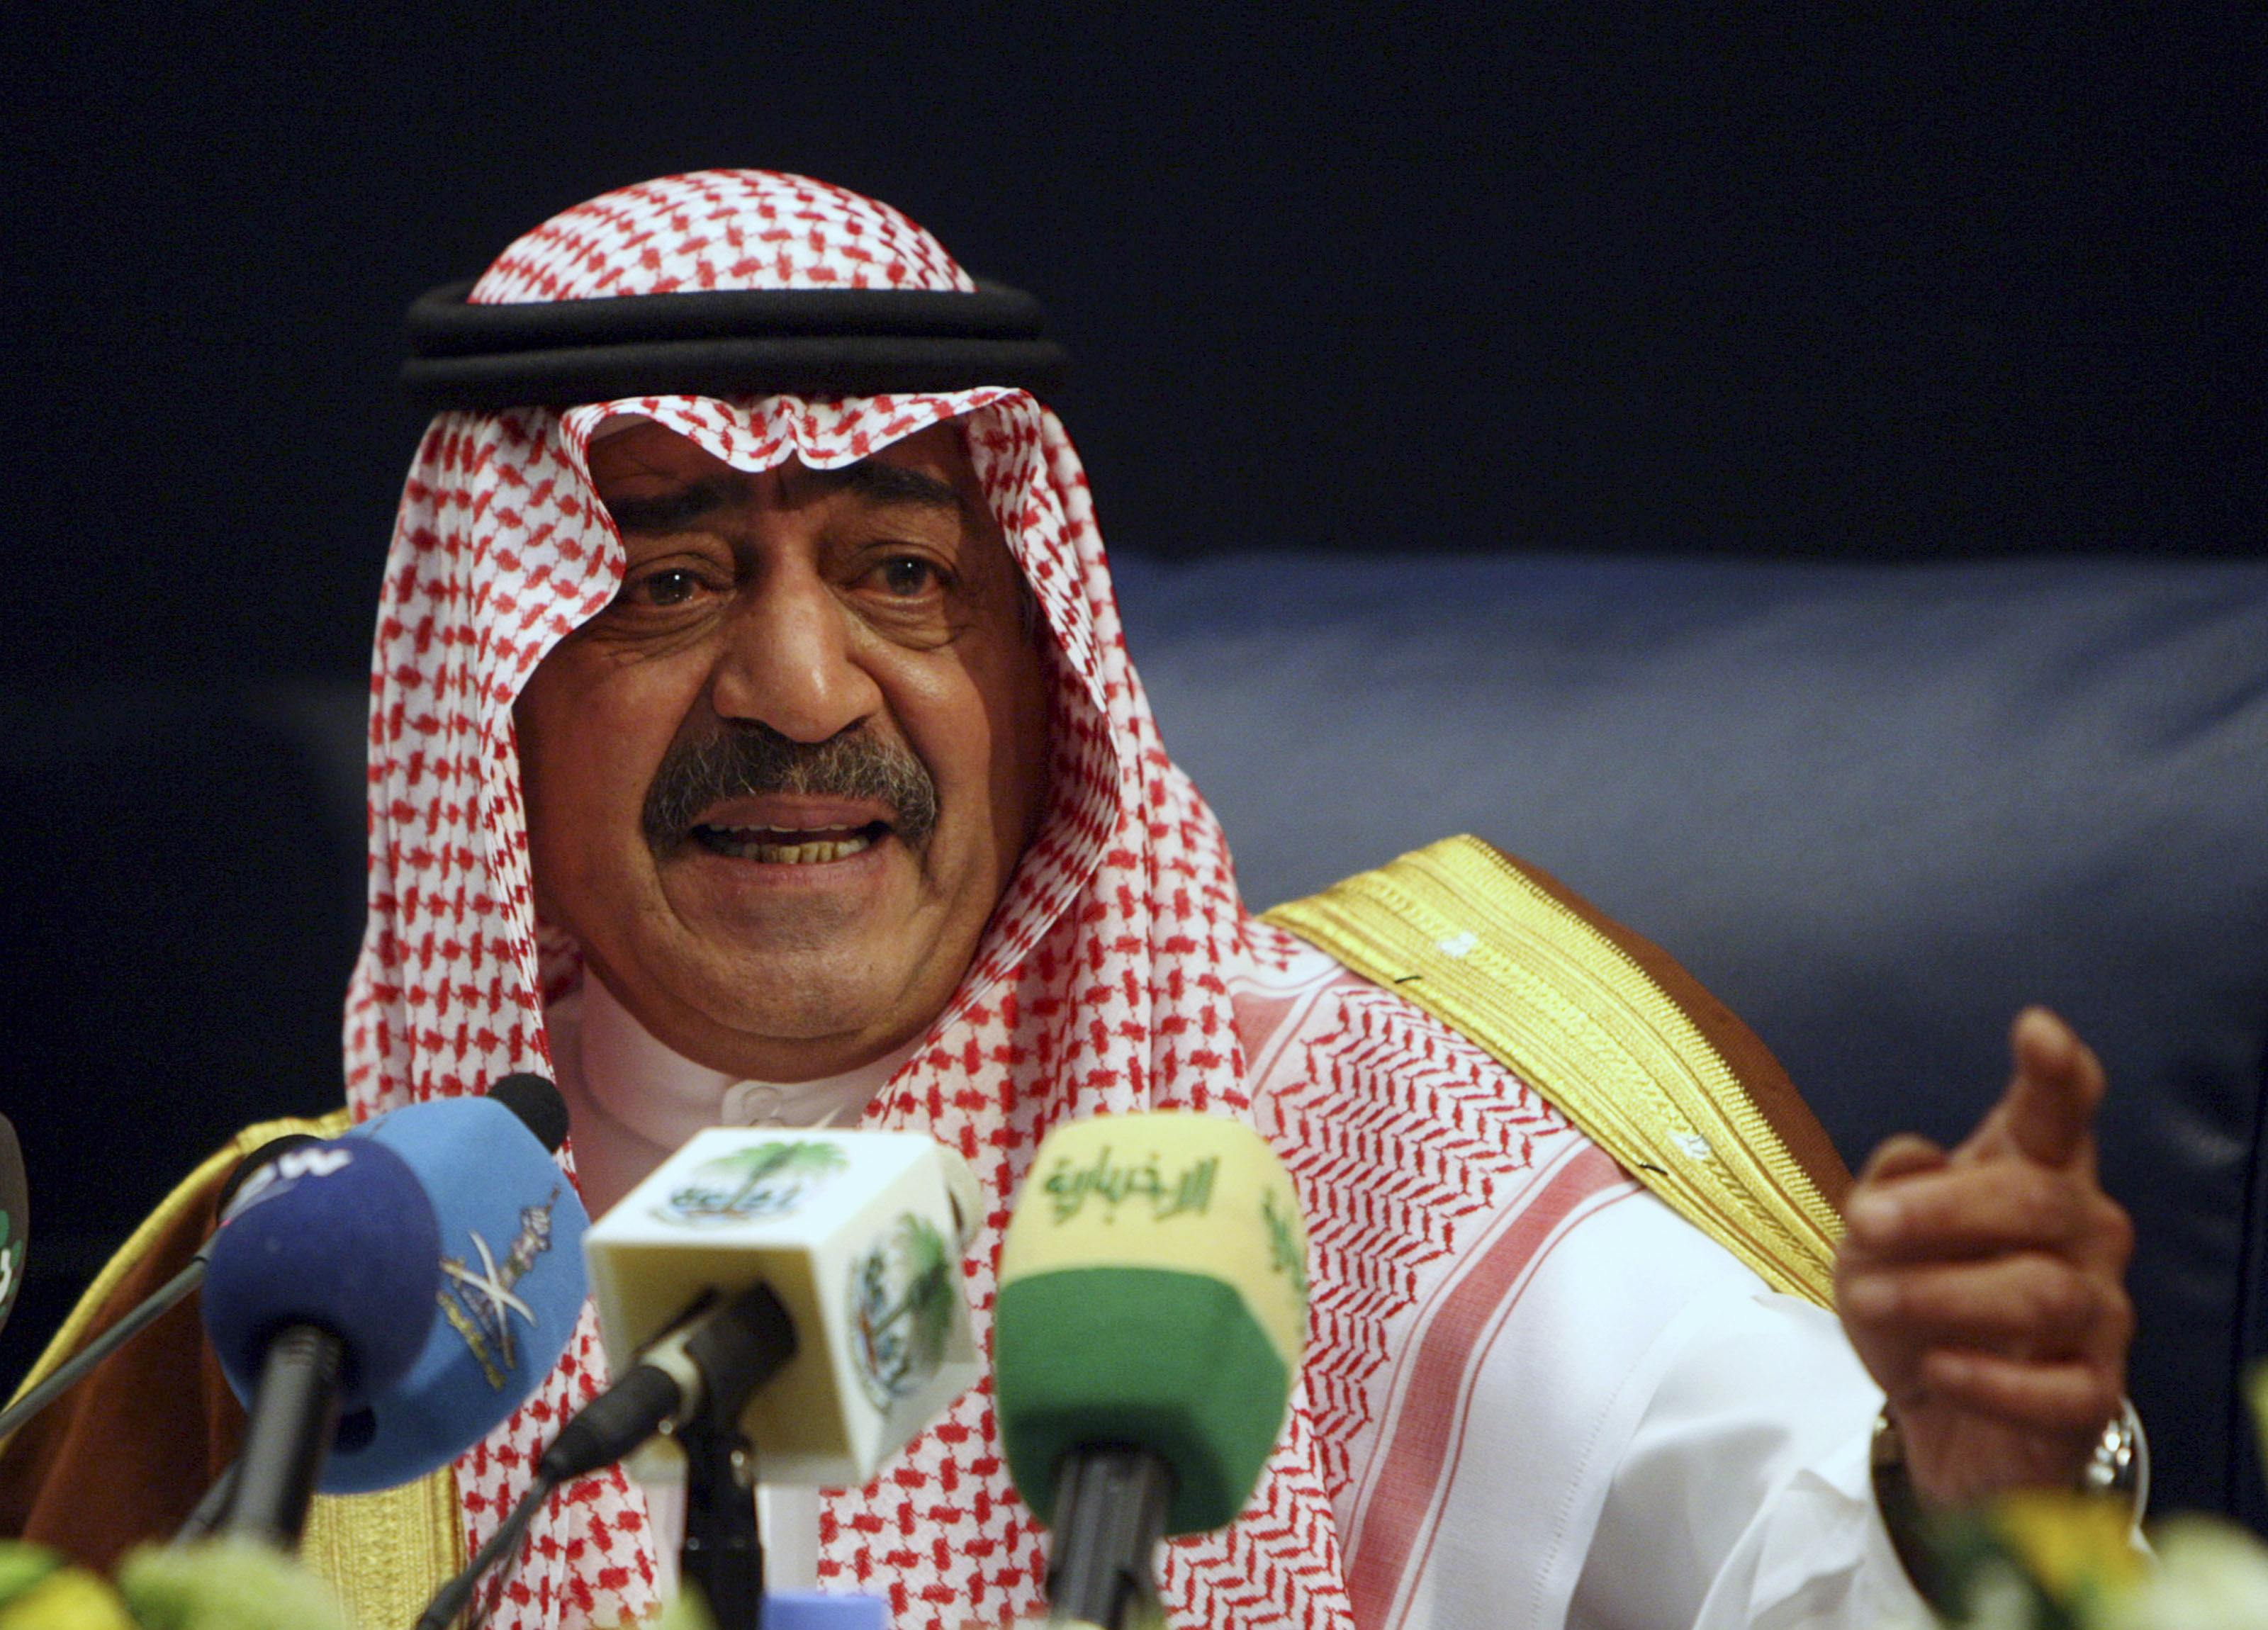 File picture shows then Saudi intelligence chief Prince Muqrin bin Abdul-Aziz, brother of Saudi King Abdullah, gesturing during a news conference in Riyadh